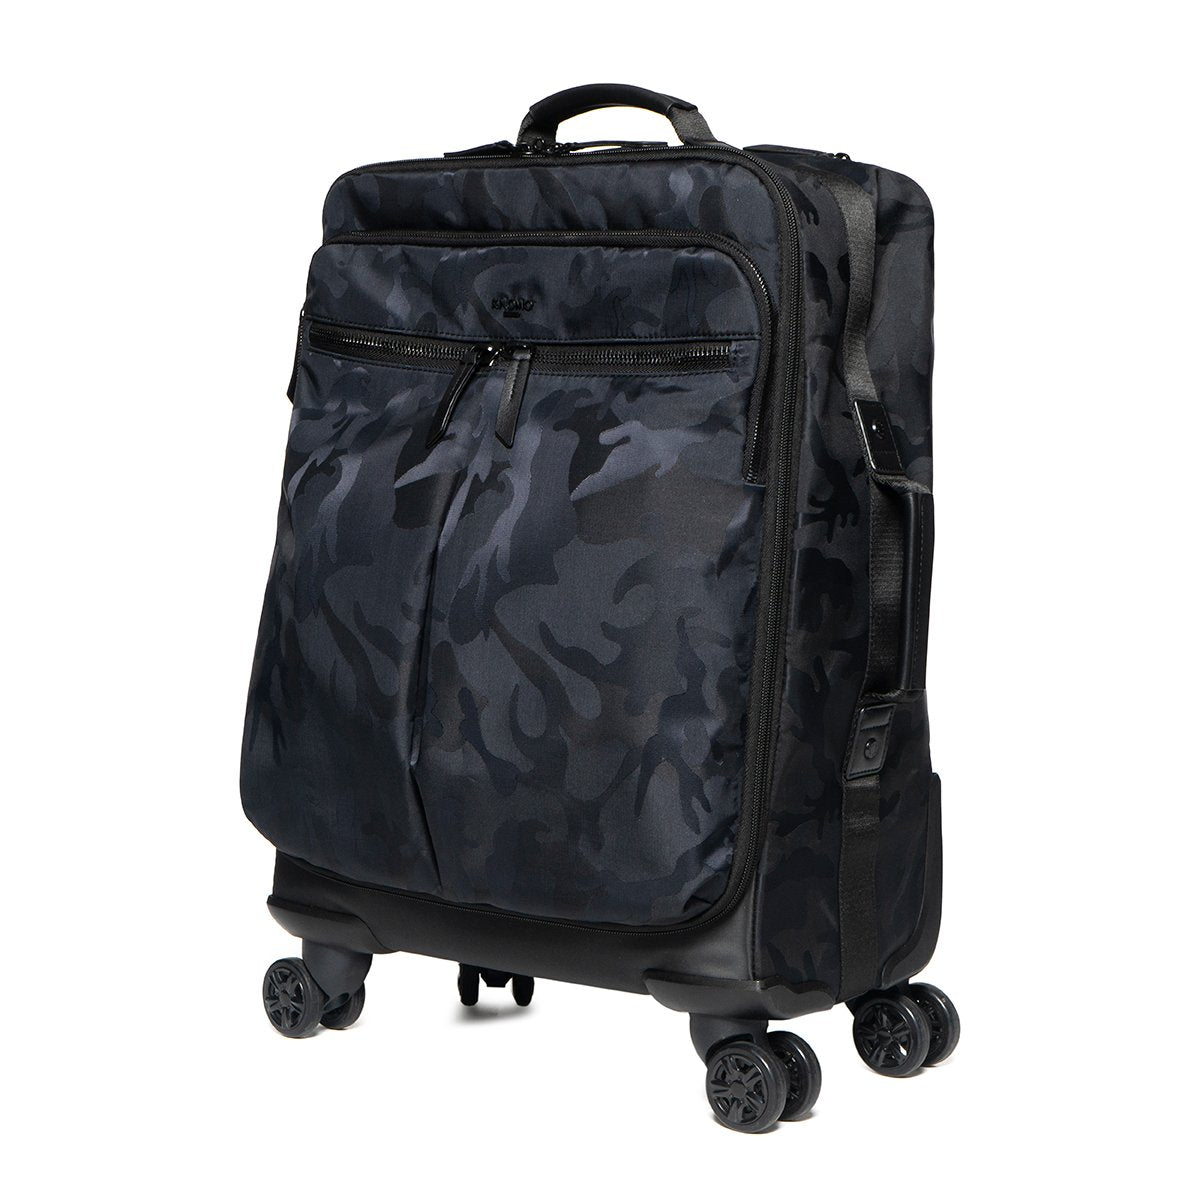 "KNOMO Park Lane Boarding Tote Three Quarter View 15"" -  Black Camouflage 